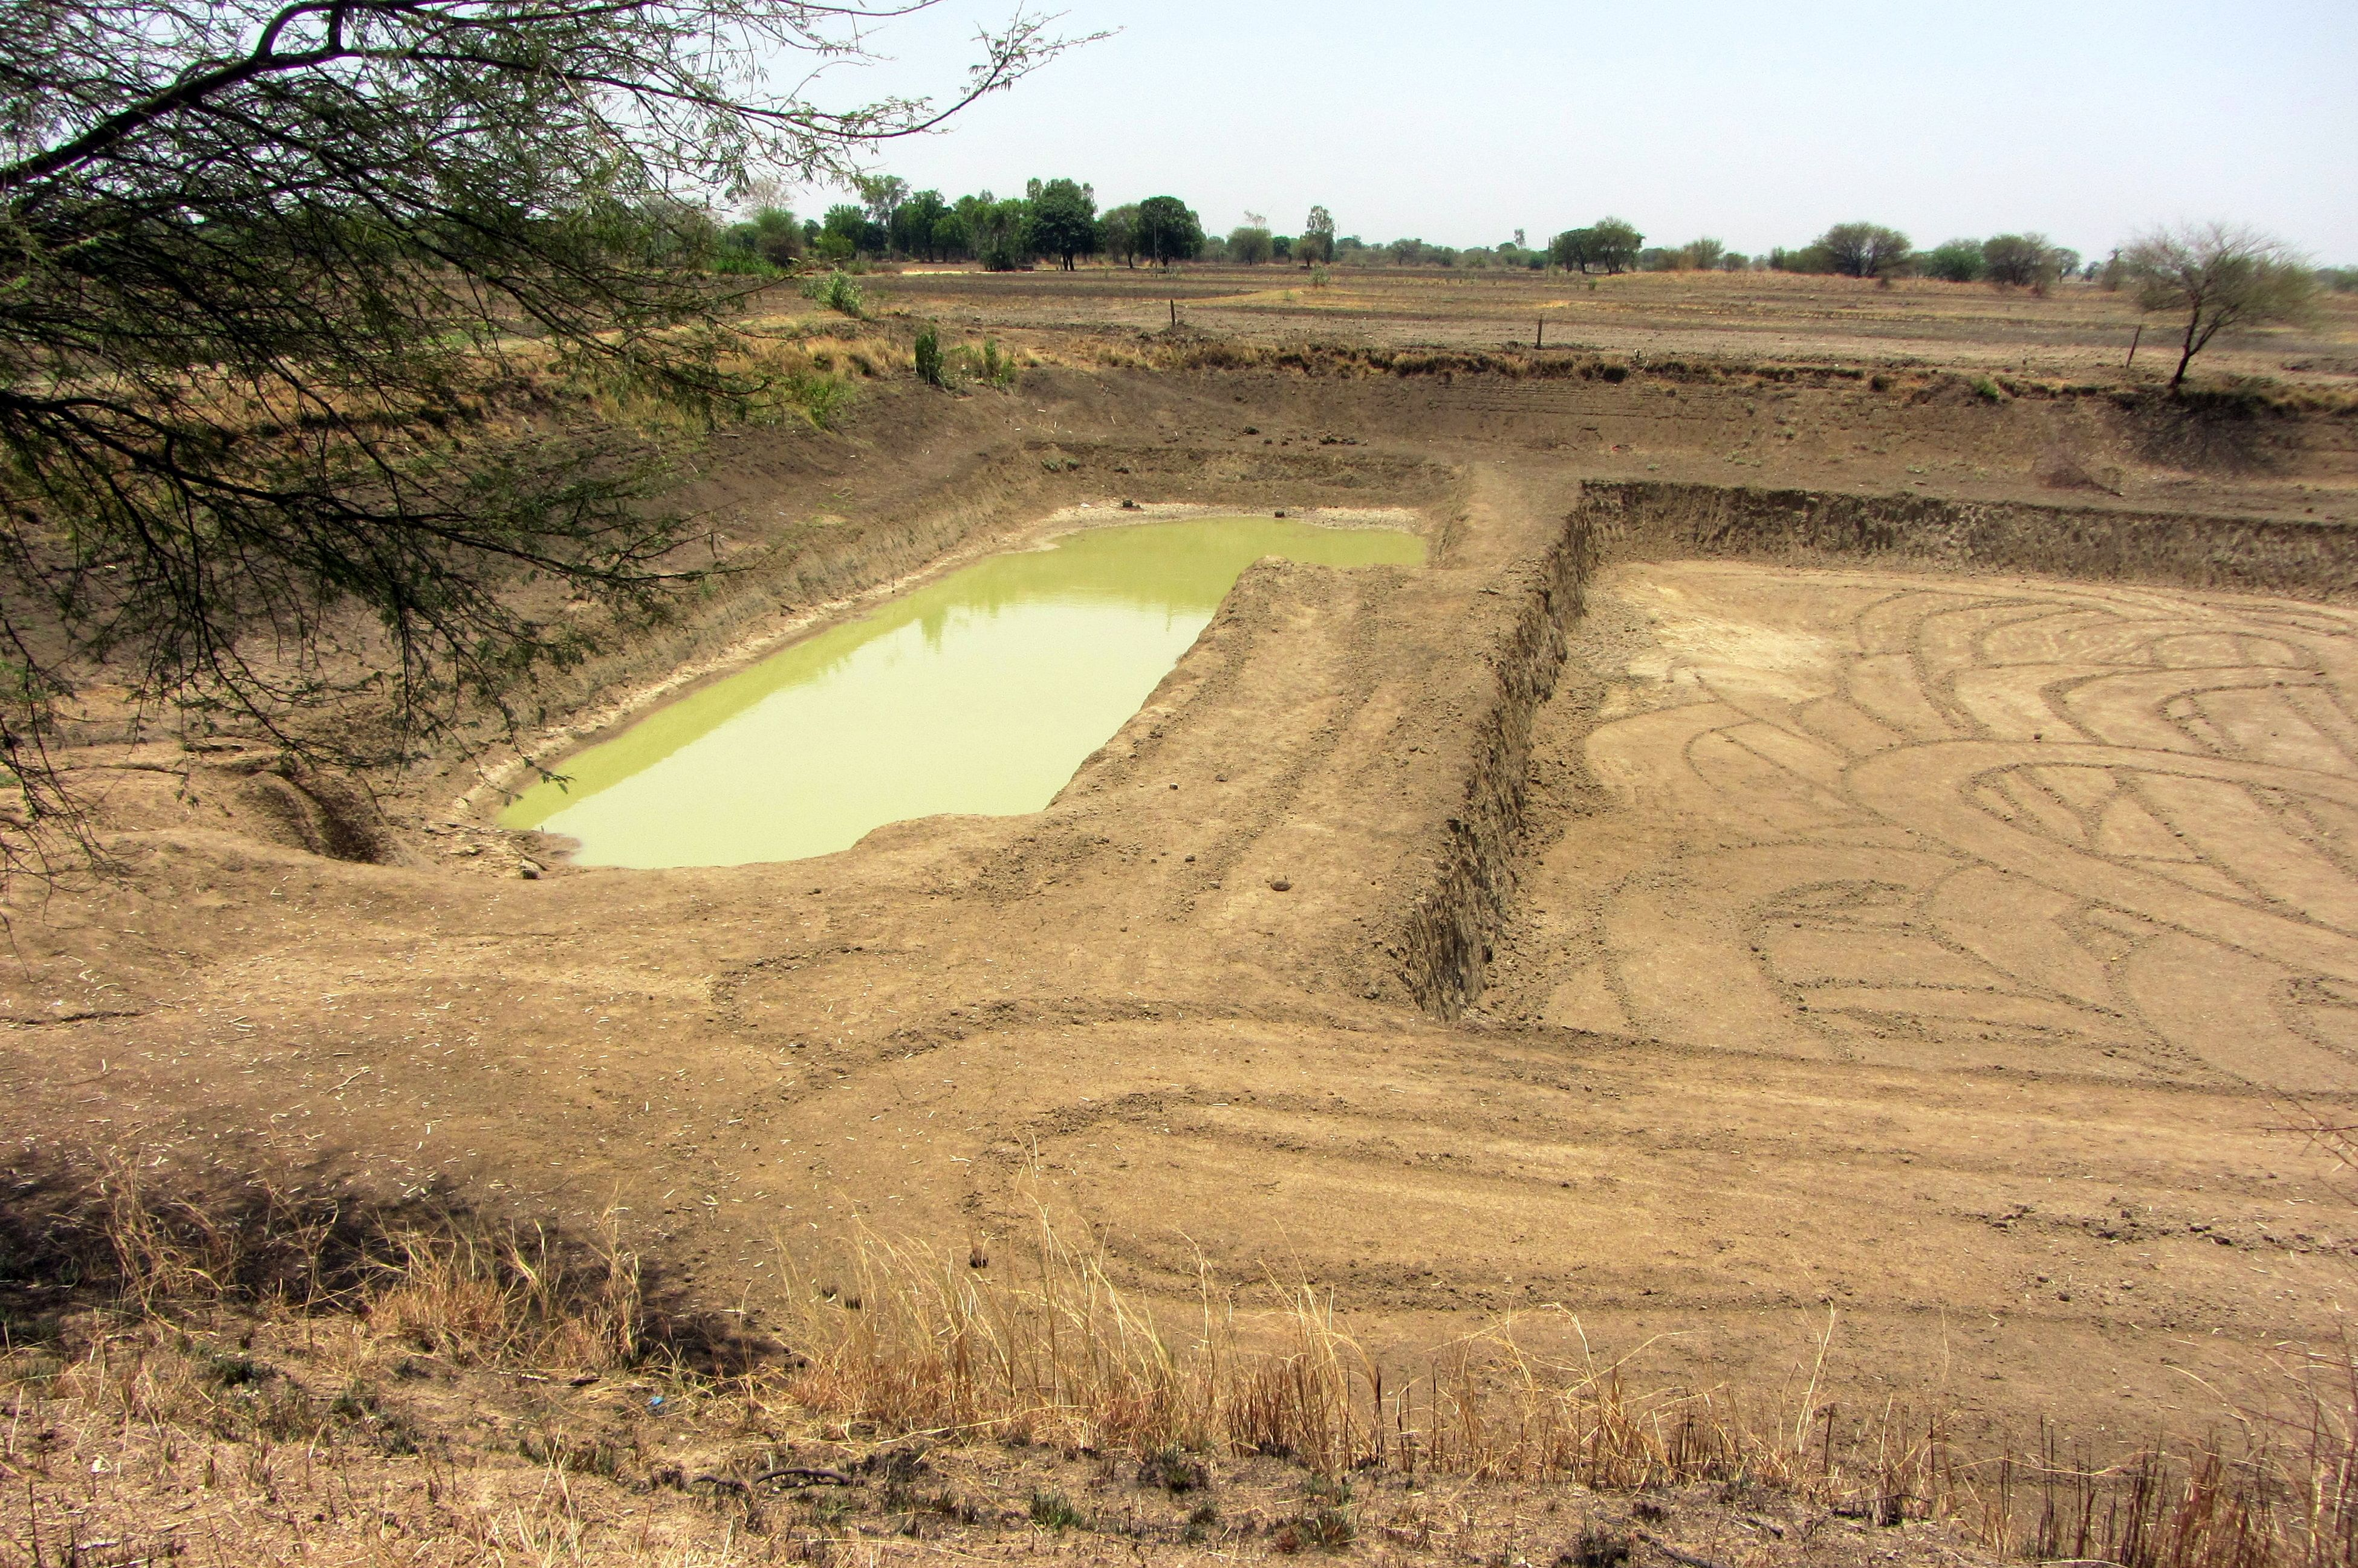 One of the large farm ponds in Tonk Khurd village still holding some water now neatly segregated from the portion being deepened.